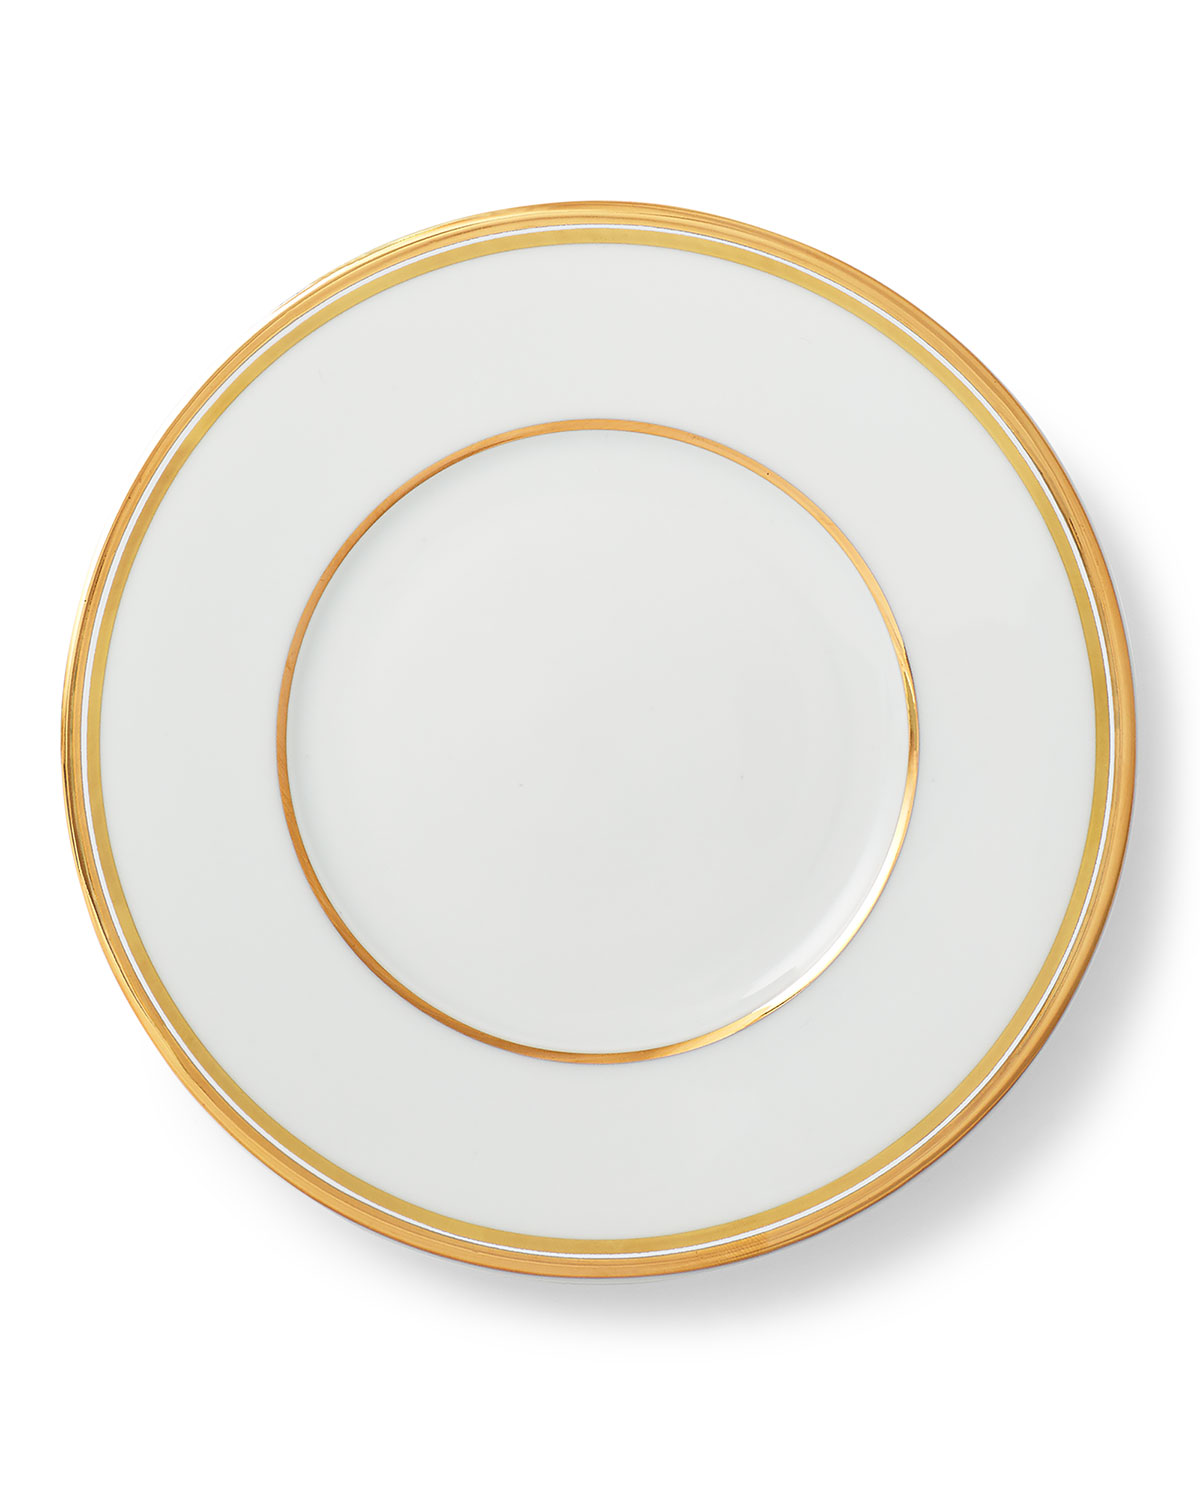 Ralph Lauren Home Wilshire Bread and Butter Plate, Gold